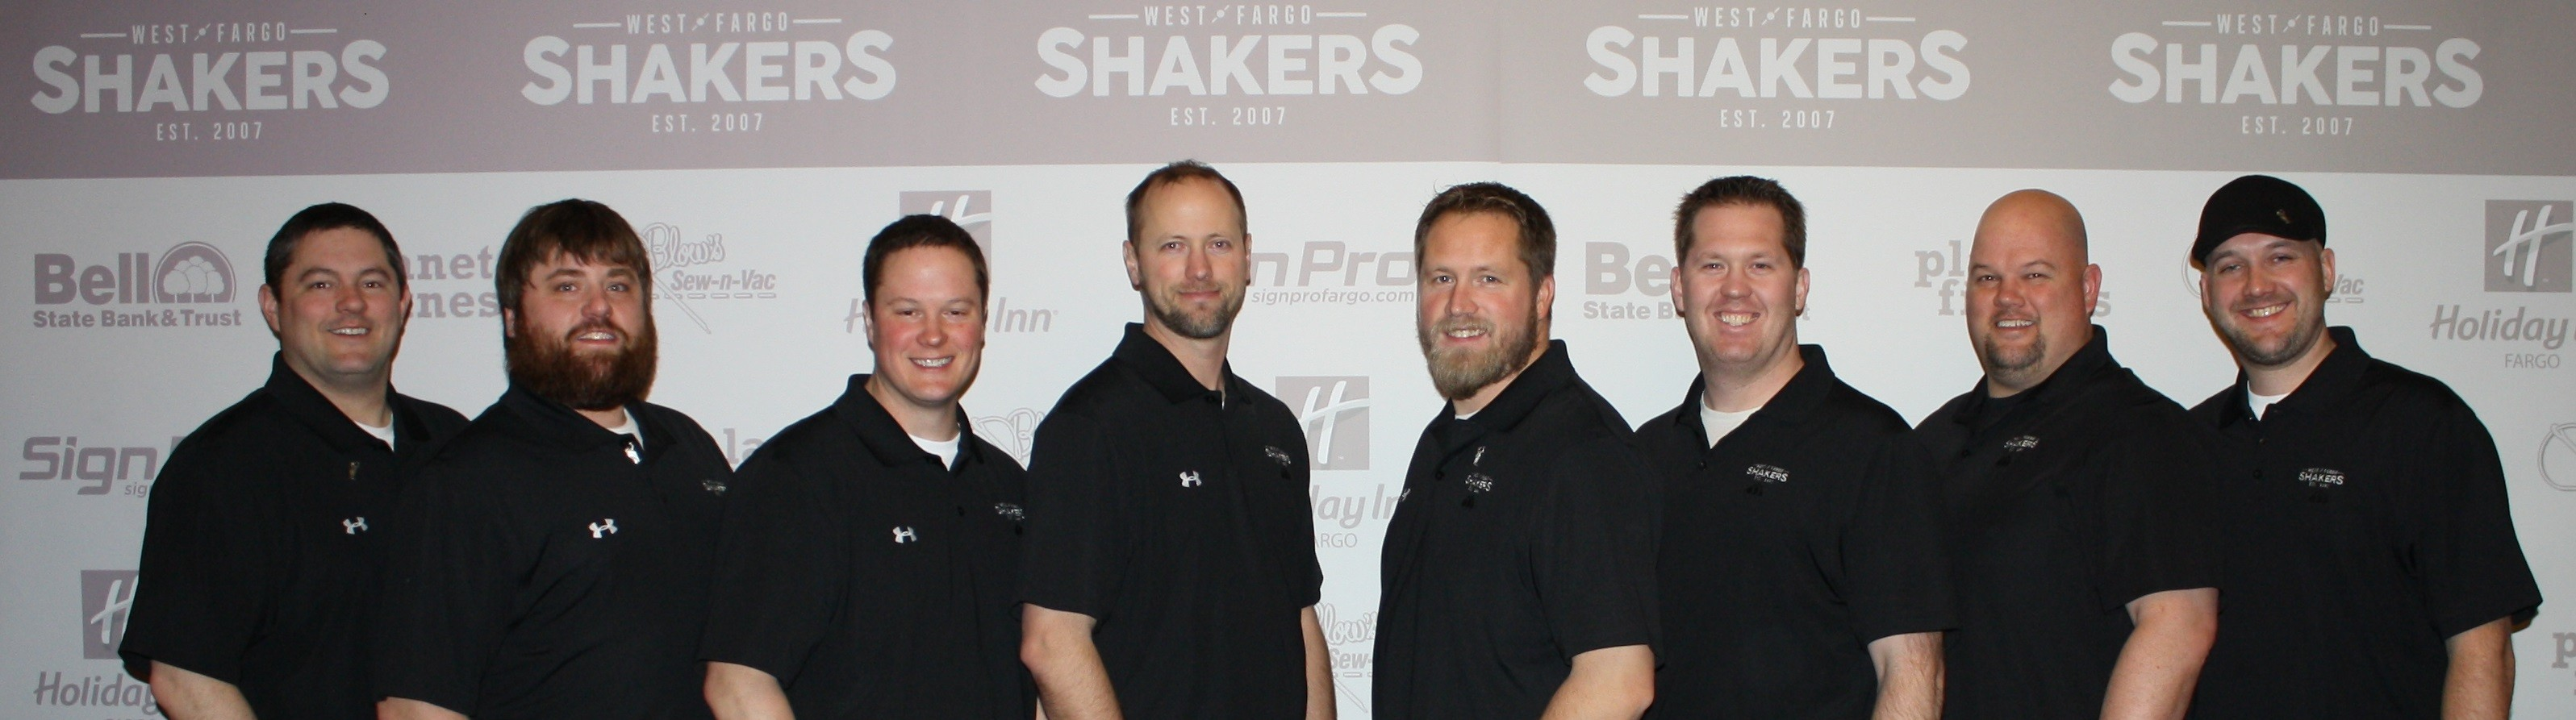 Shakers 2015